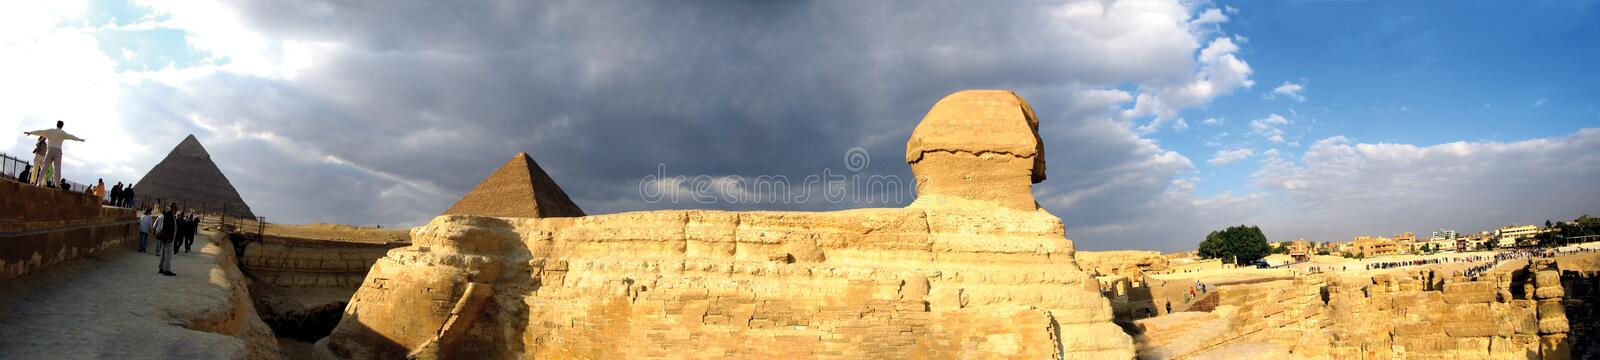 Download Panorama stock image. Image of landscape, history, egypt - 1757001